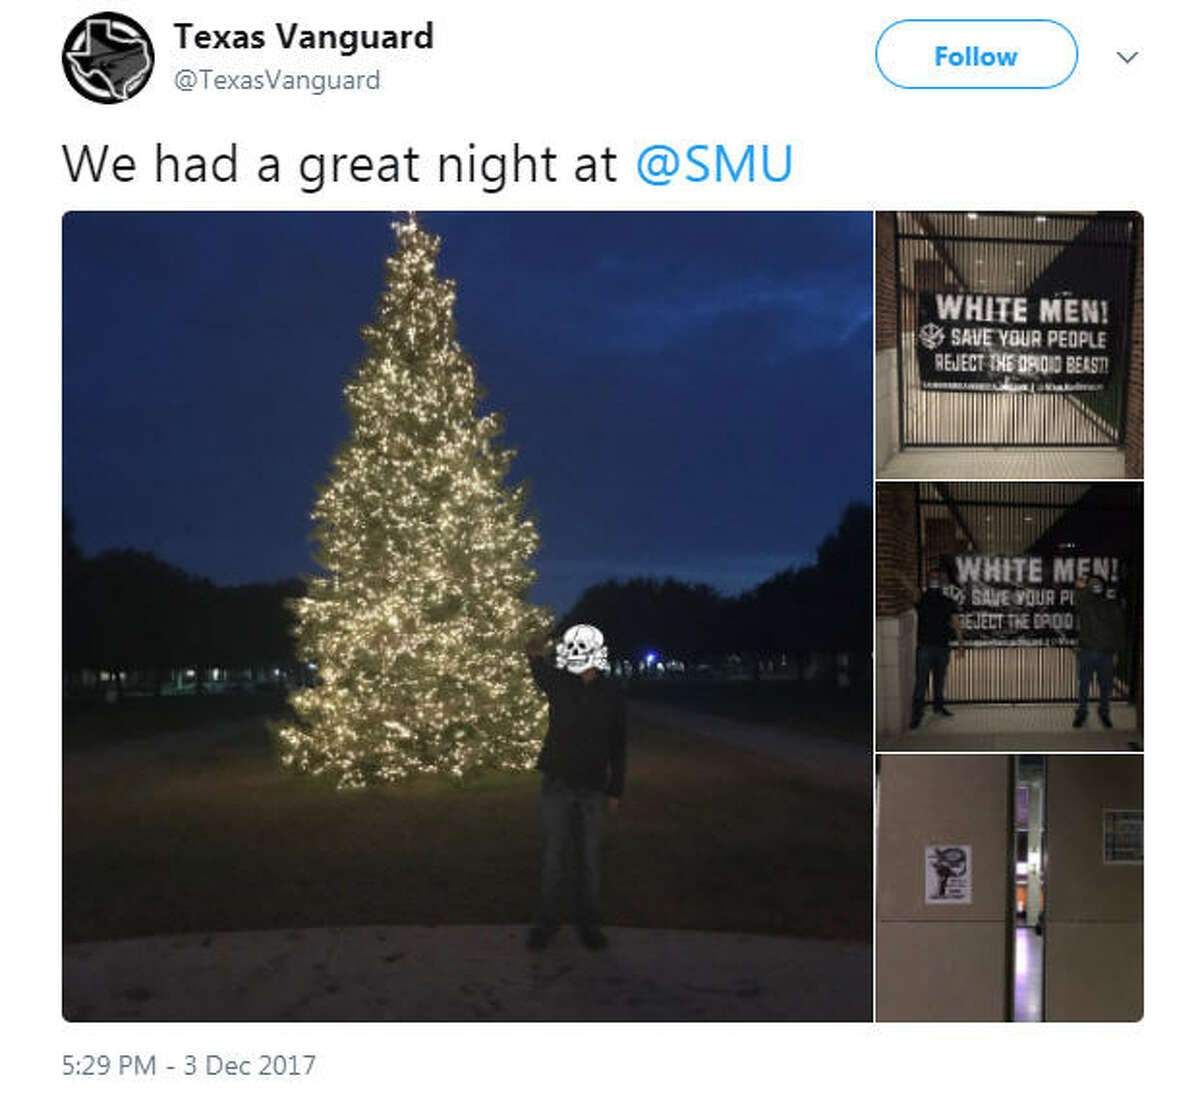 Texas Vanguard visits Southern Methodist University The white supremacist group tweeted photos of members giving the Nazi salute at the Texas college after hours onDec. 3, 2017. The group also posted disparaging fliers against gay people and minorities on the campus.Read more: Chron.com